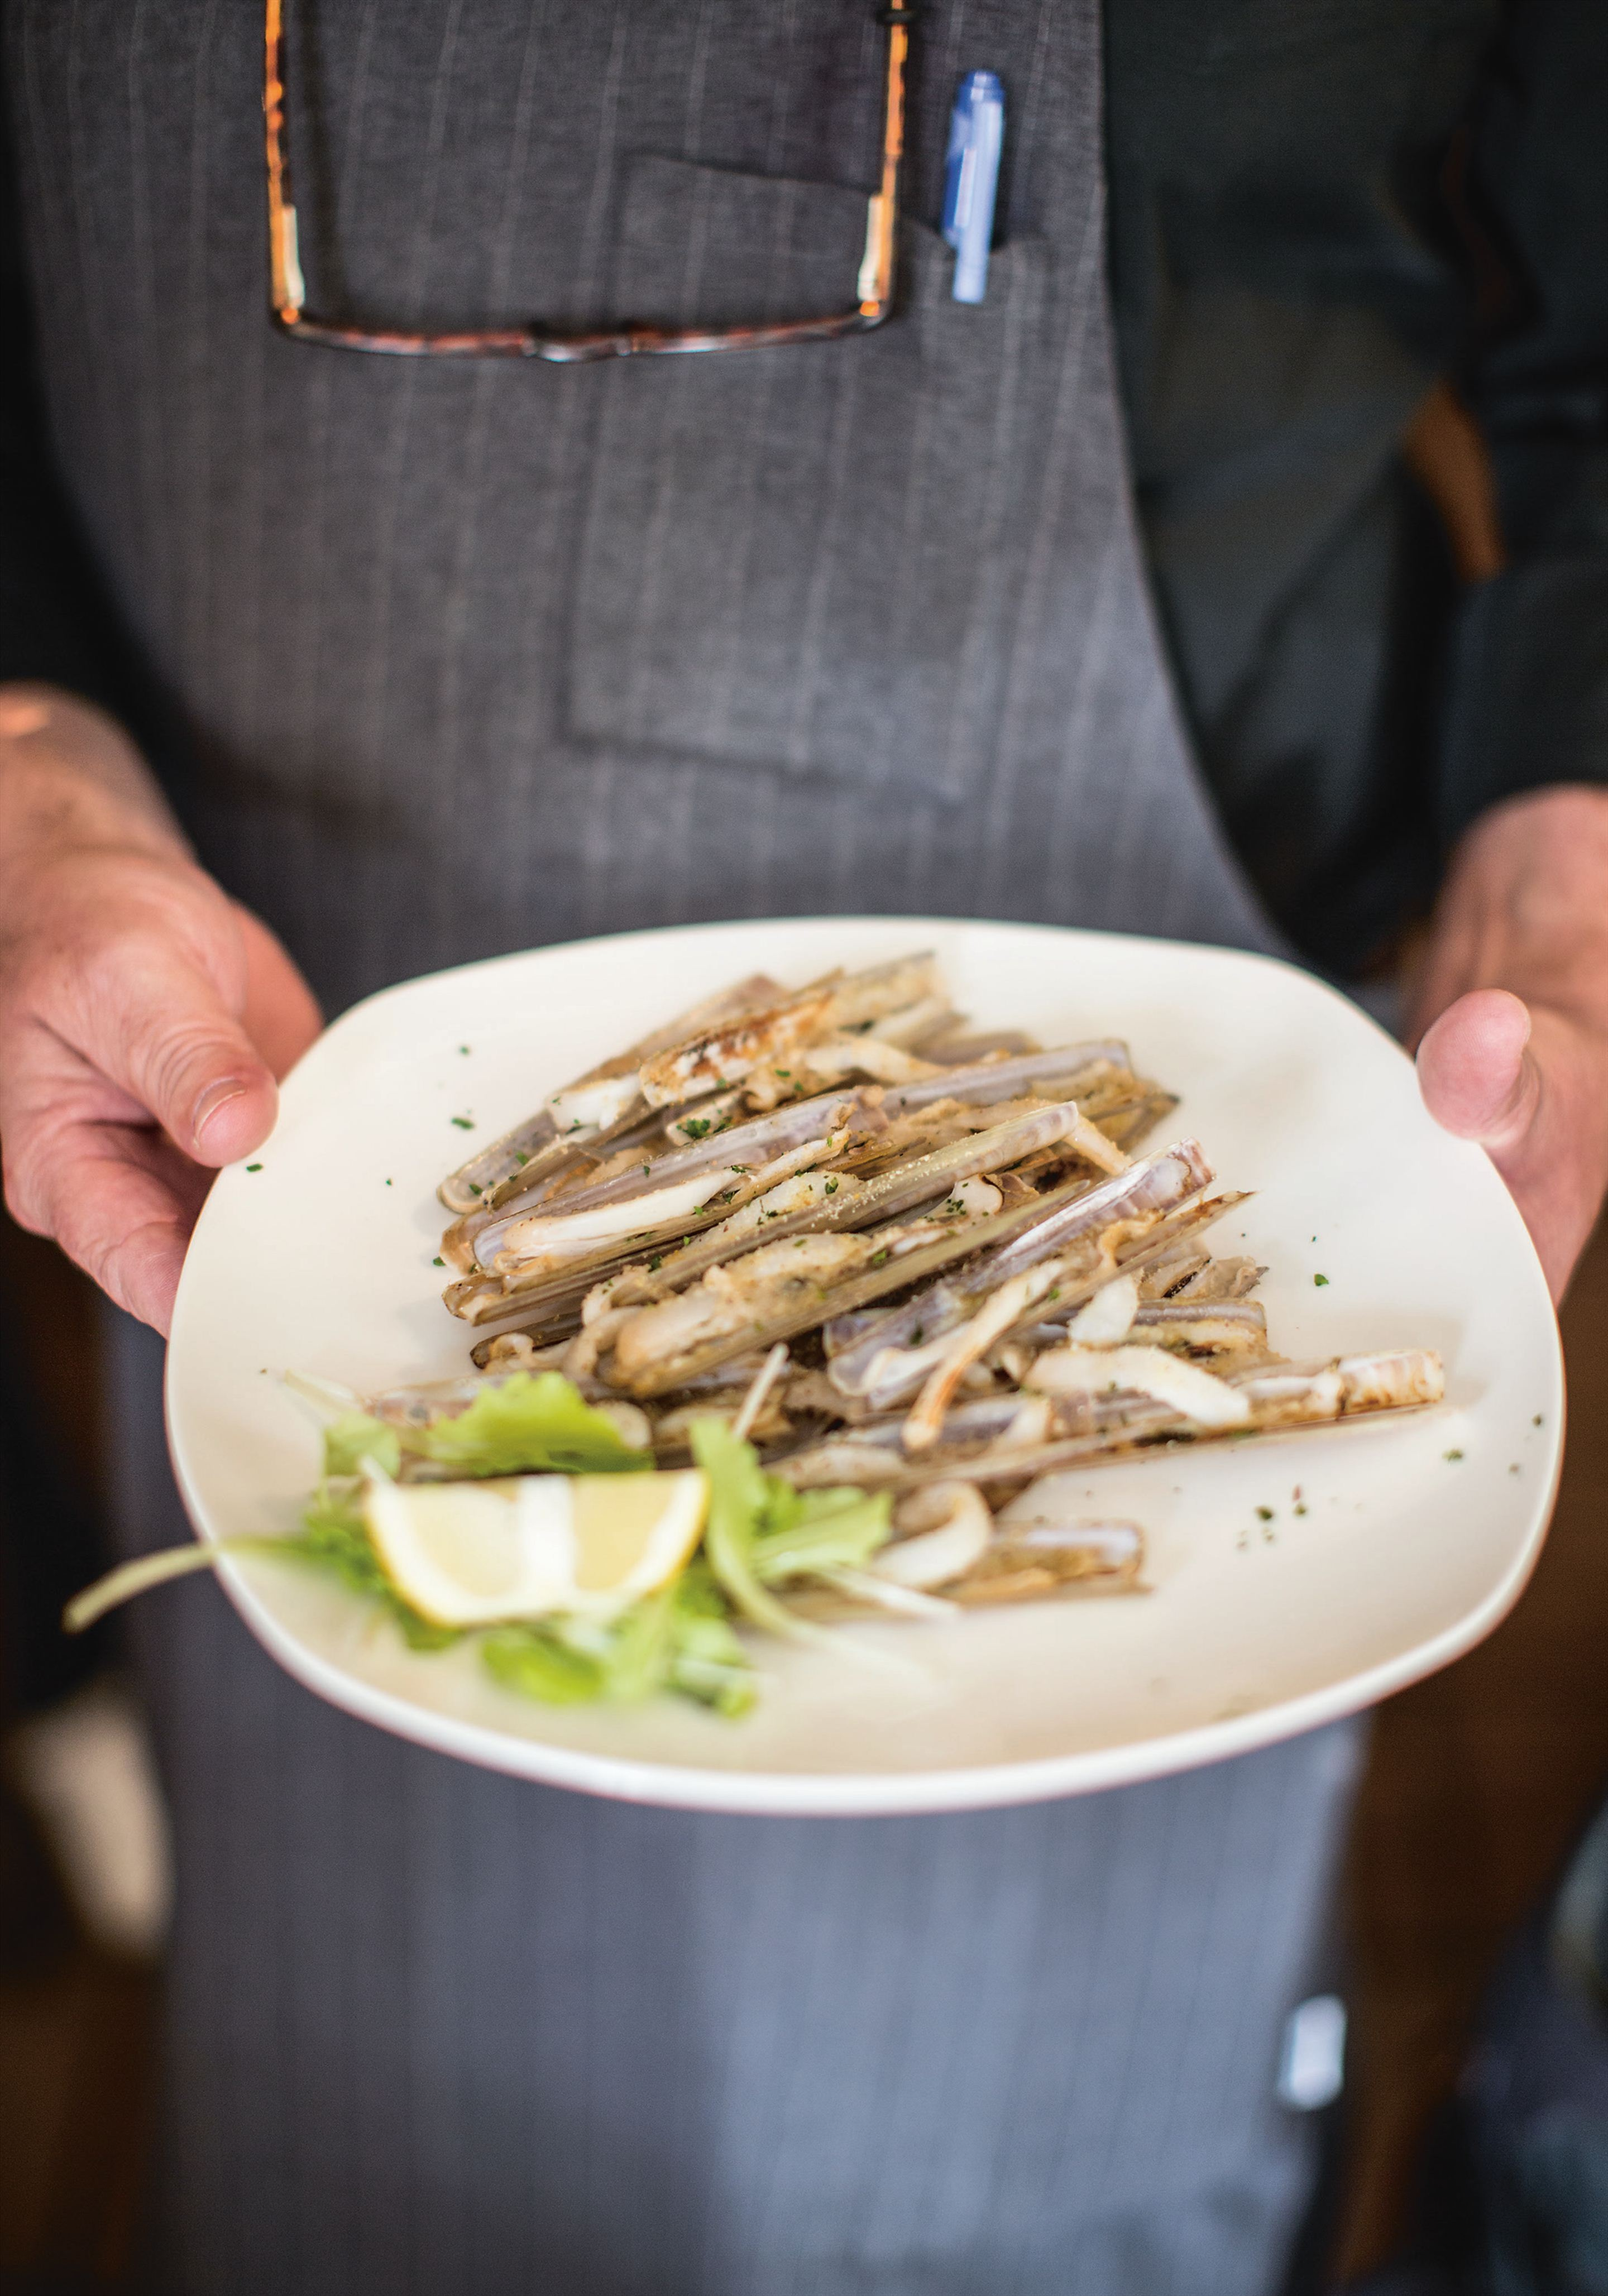 Razor clams with garlic and parsley